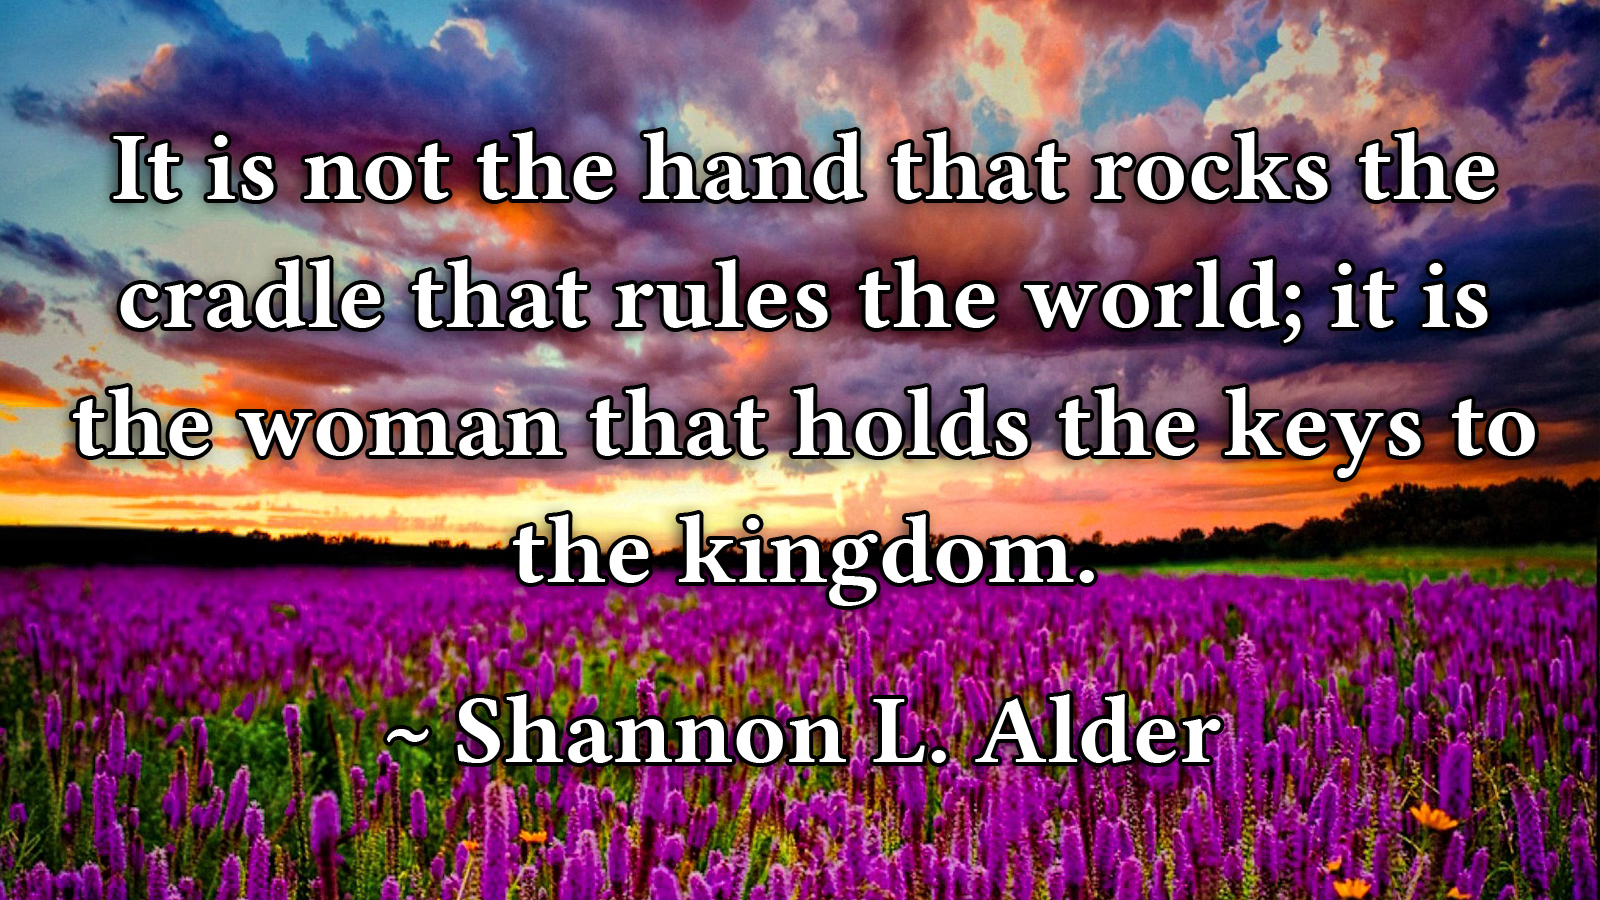 A Quote by Shannon L Alder.jpg